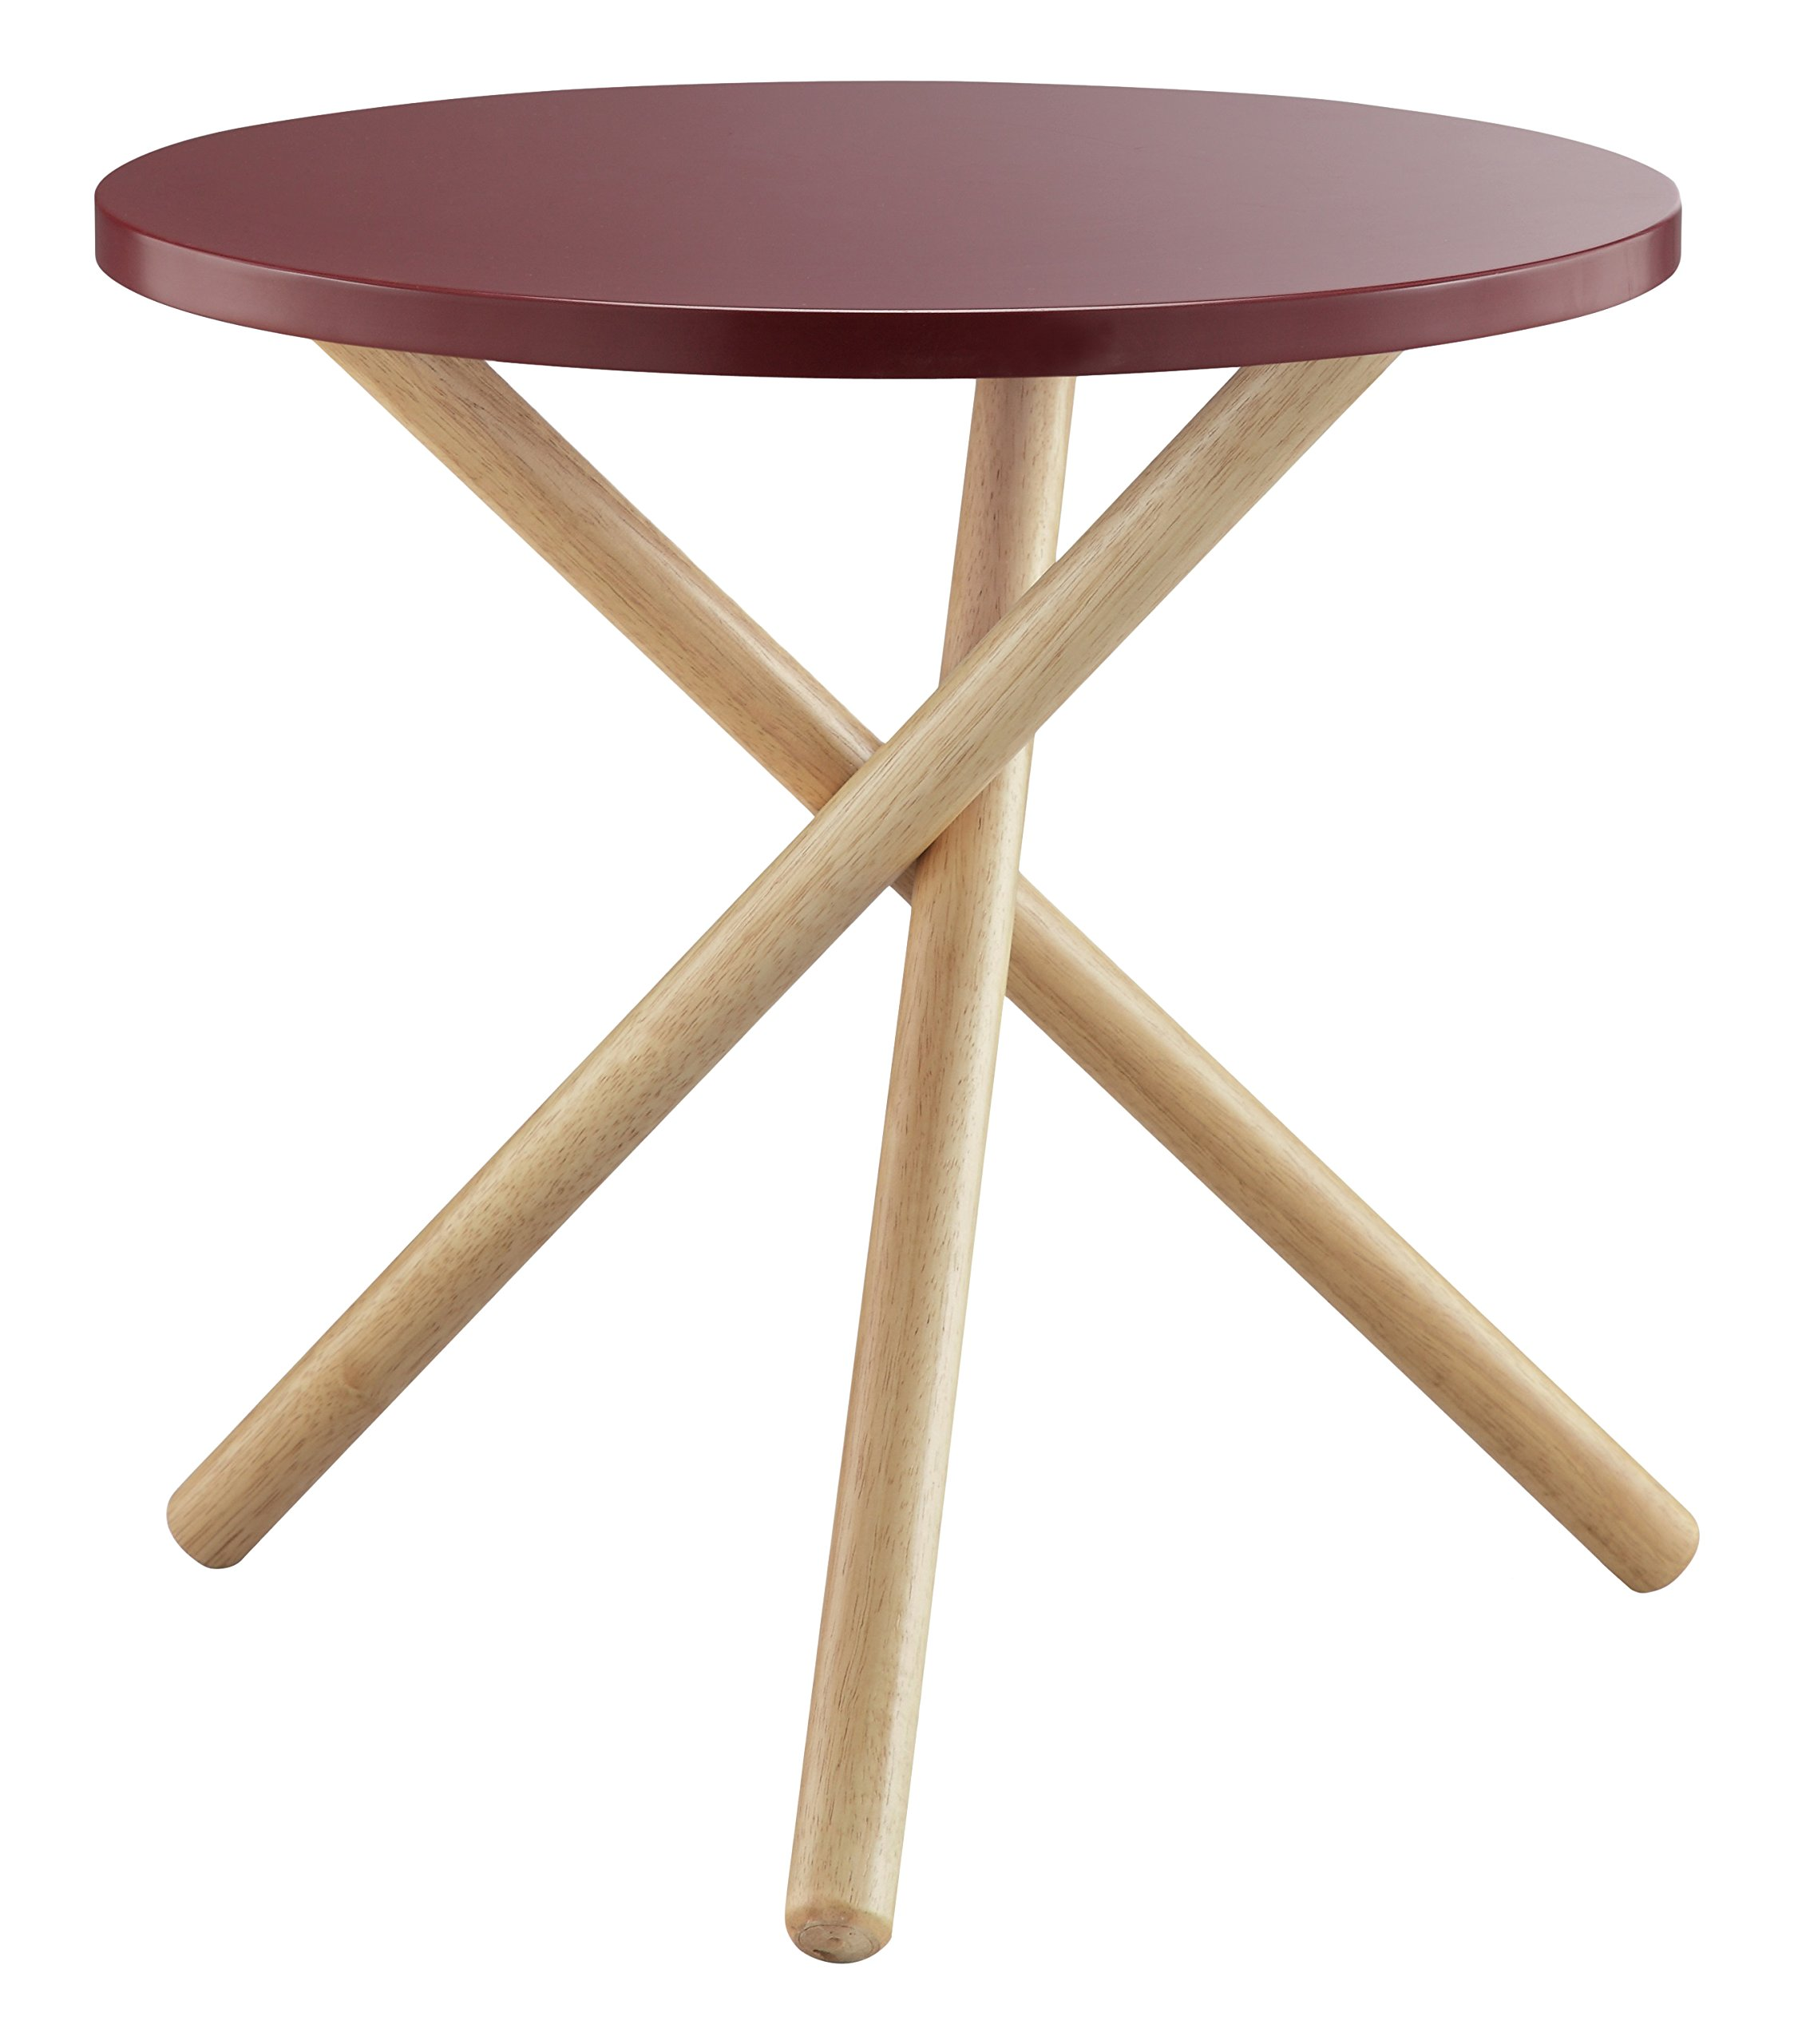 ACME Lanica Burgundy and Natural End Table - Round tripod table Wooden round Top Wooden tripod base - living-room-furniture, living-room, end-tables - 810K0A4mcvL -